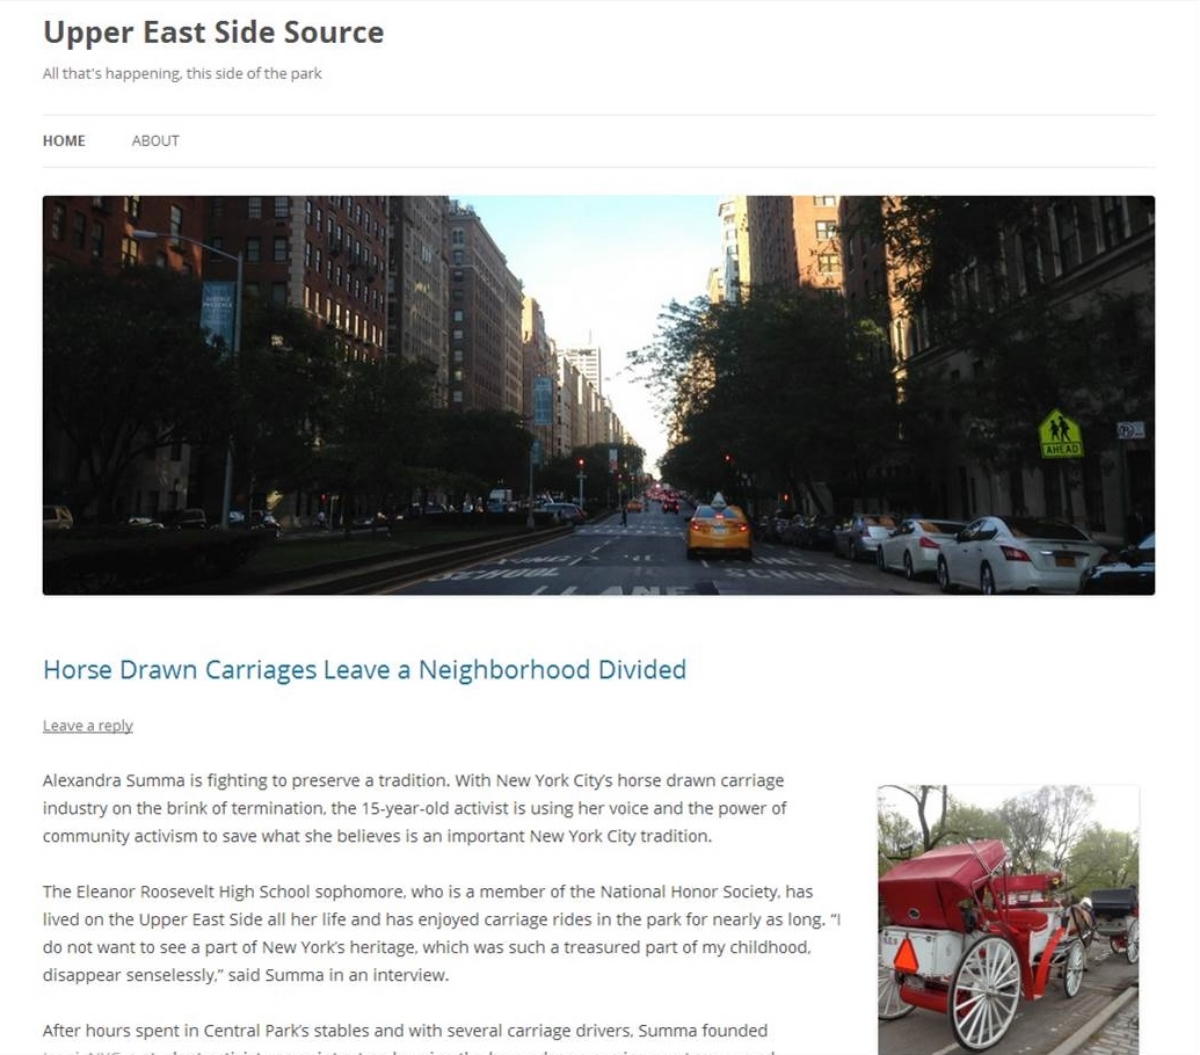 Click here to read the article in the Upper East Side Source